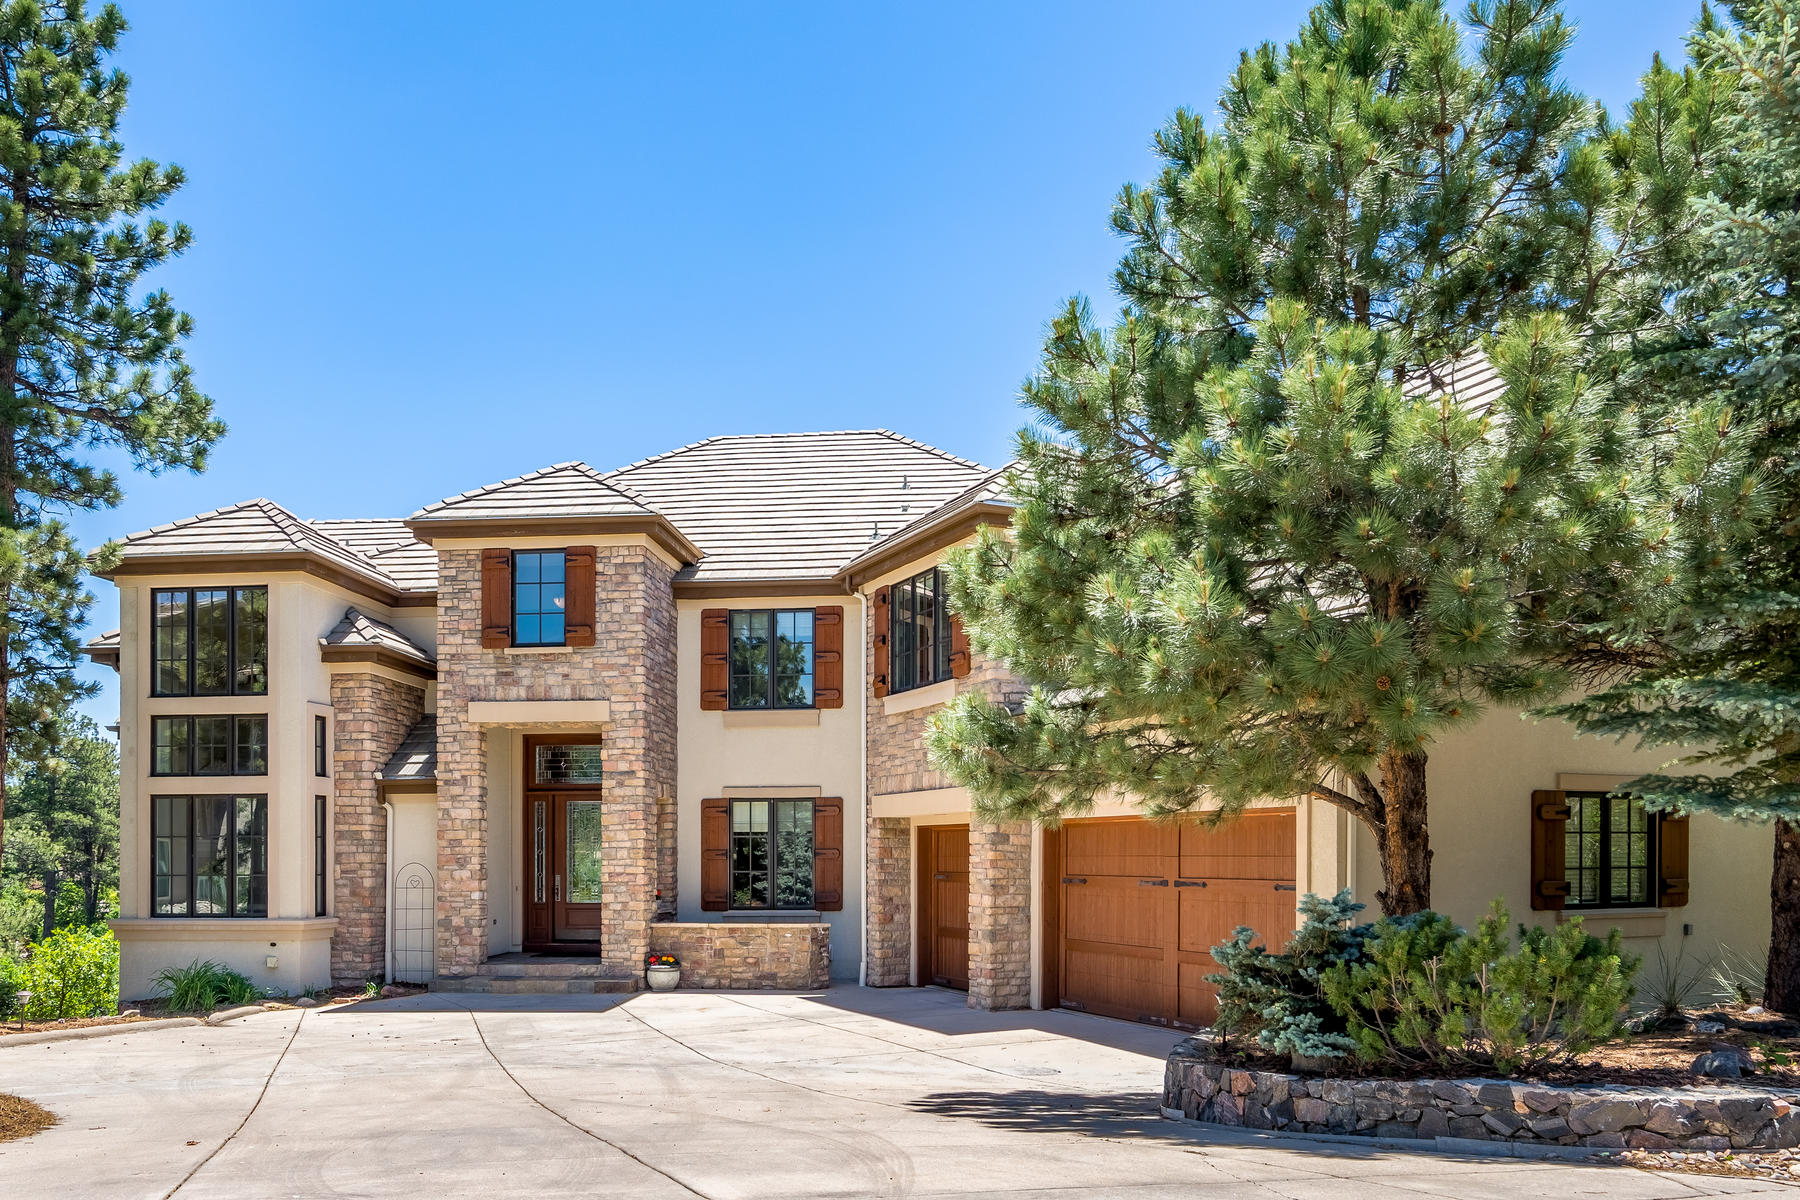 Single Family Home for Active at 1356 Woodmont Way Castle Rock, Colorado 80108 United States